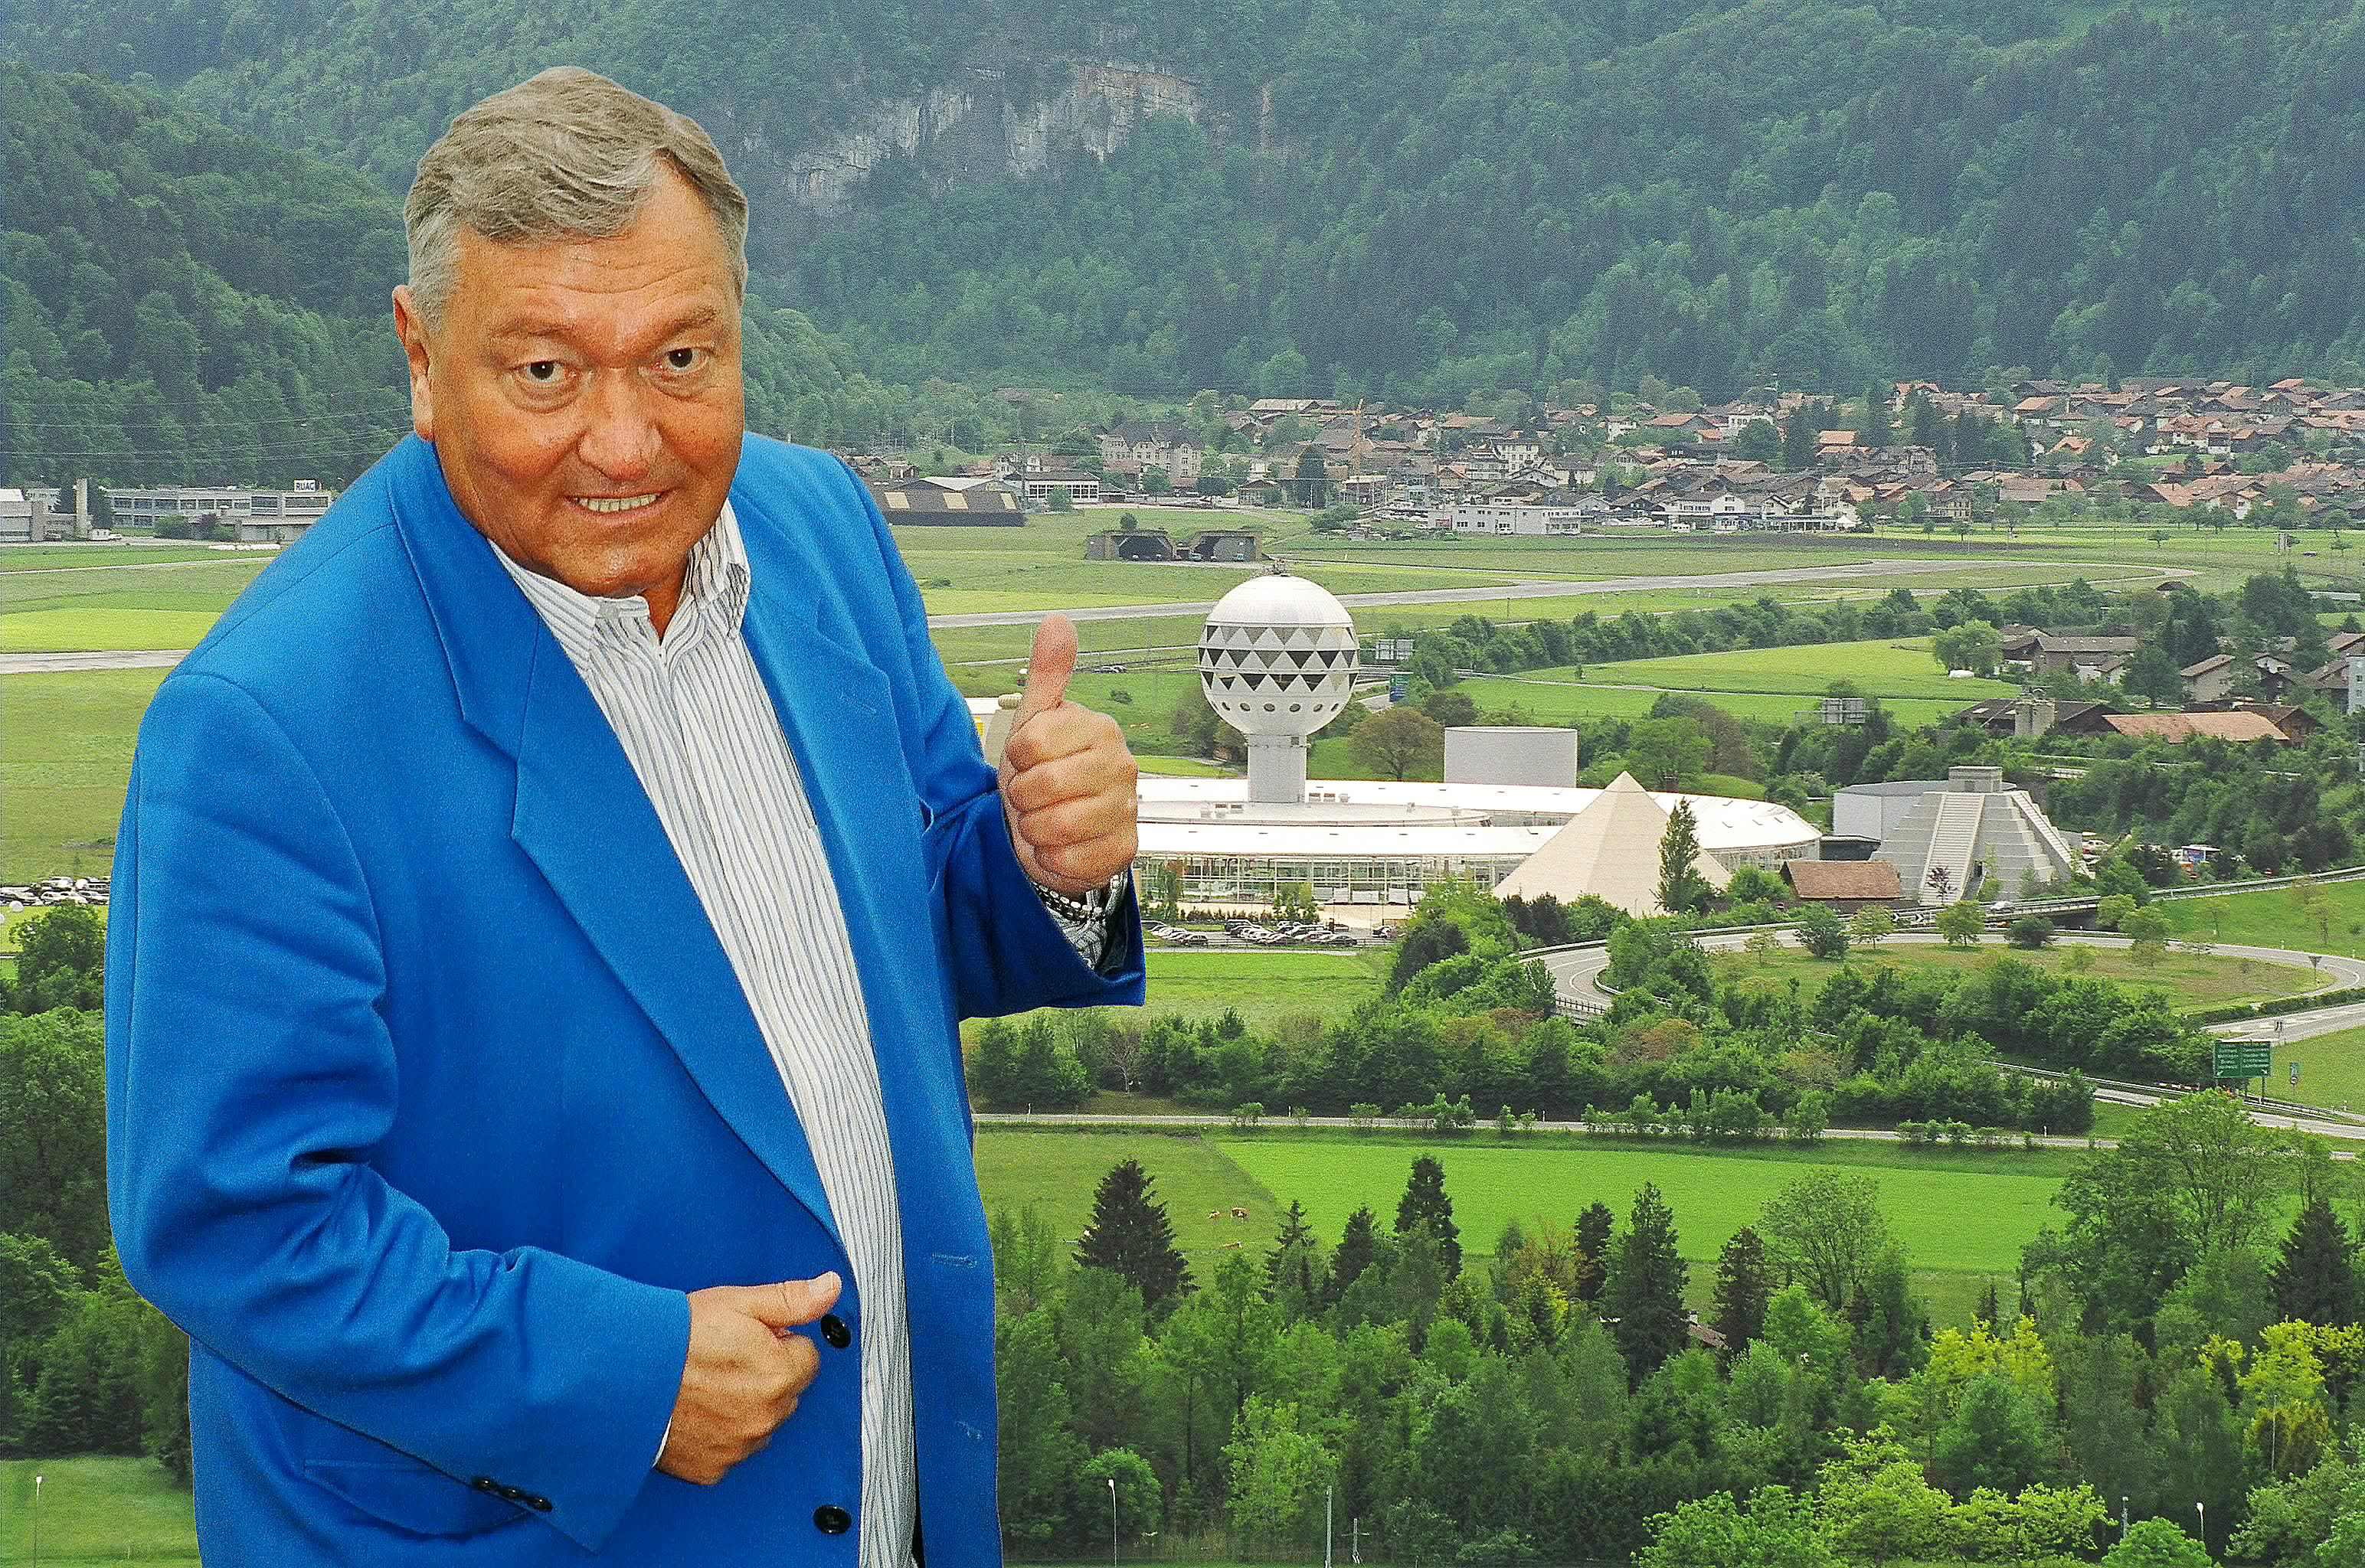 Erich von Daniken, in a blue jacket, in front of the Mystery Park theme park